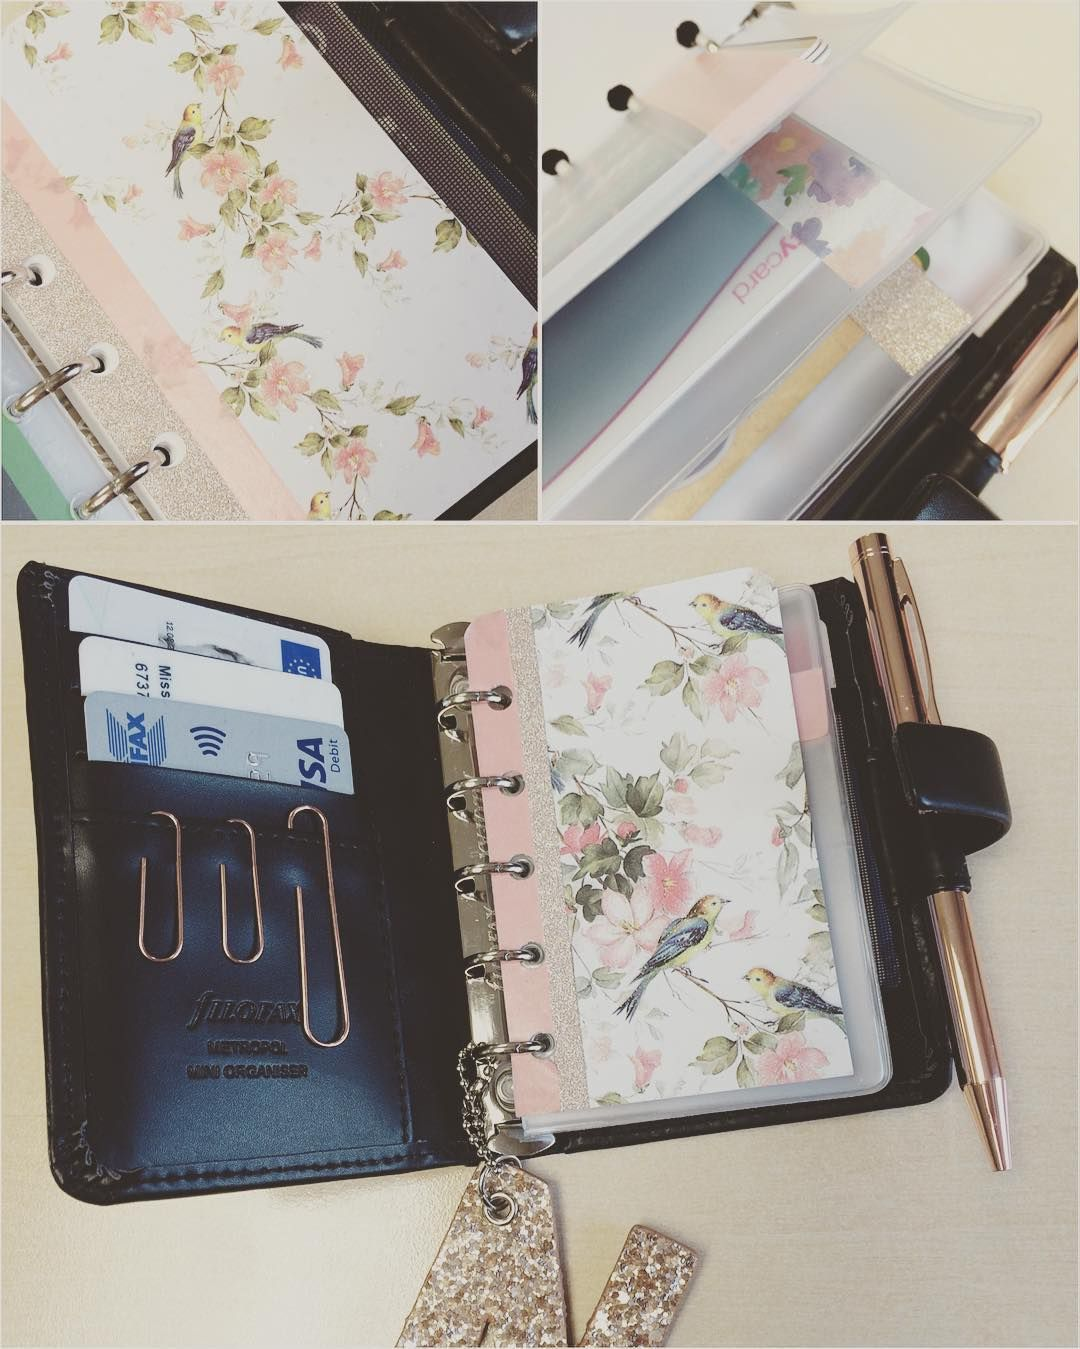 This is how you make a Filofax Mini work as a purse!  #filofax #filofaxmini #filofaxmetropol #purse #wallet #planner #planneraddict #planningaddict #filofaxlove #washi #washitape #divider by coleypopss